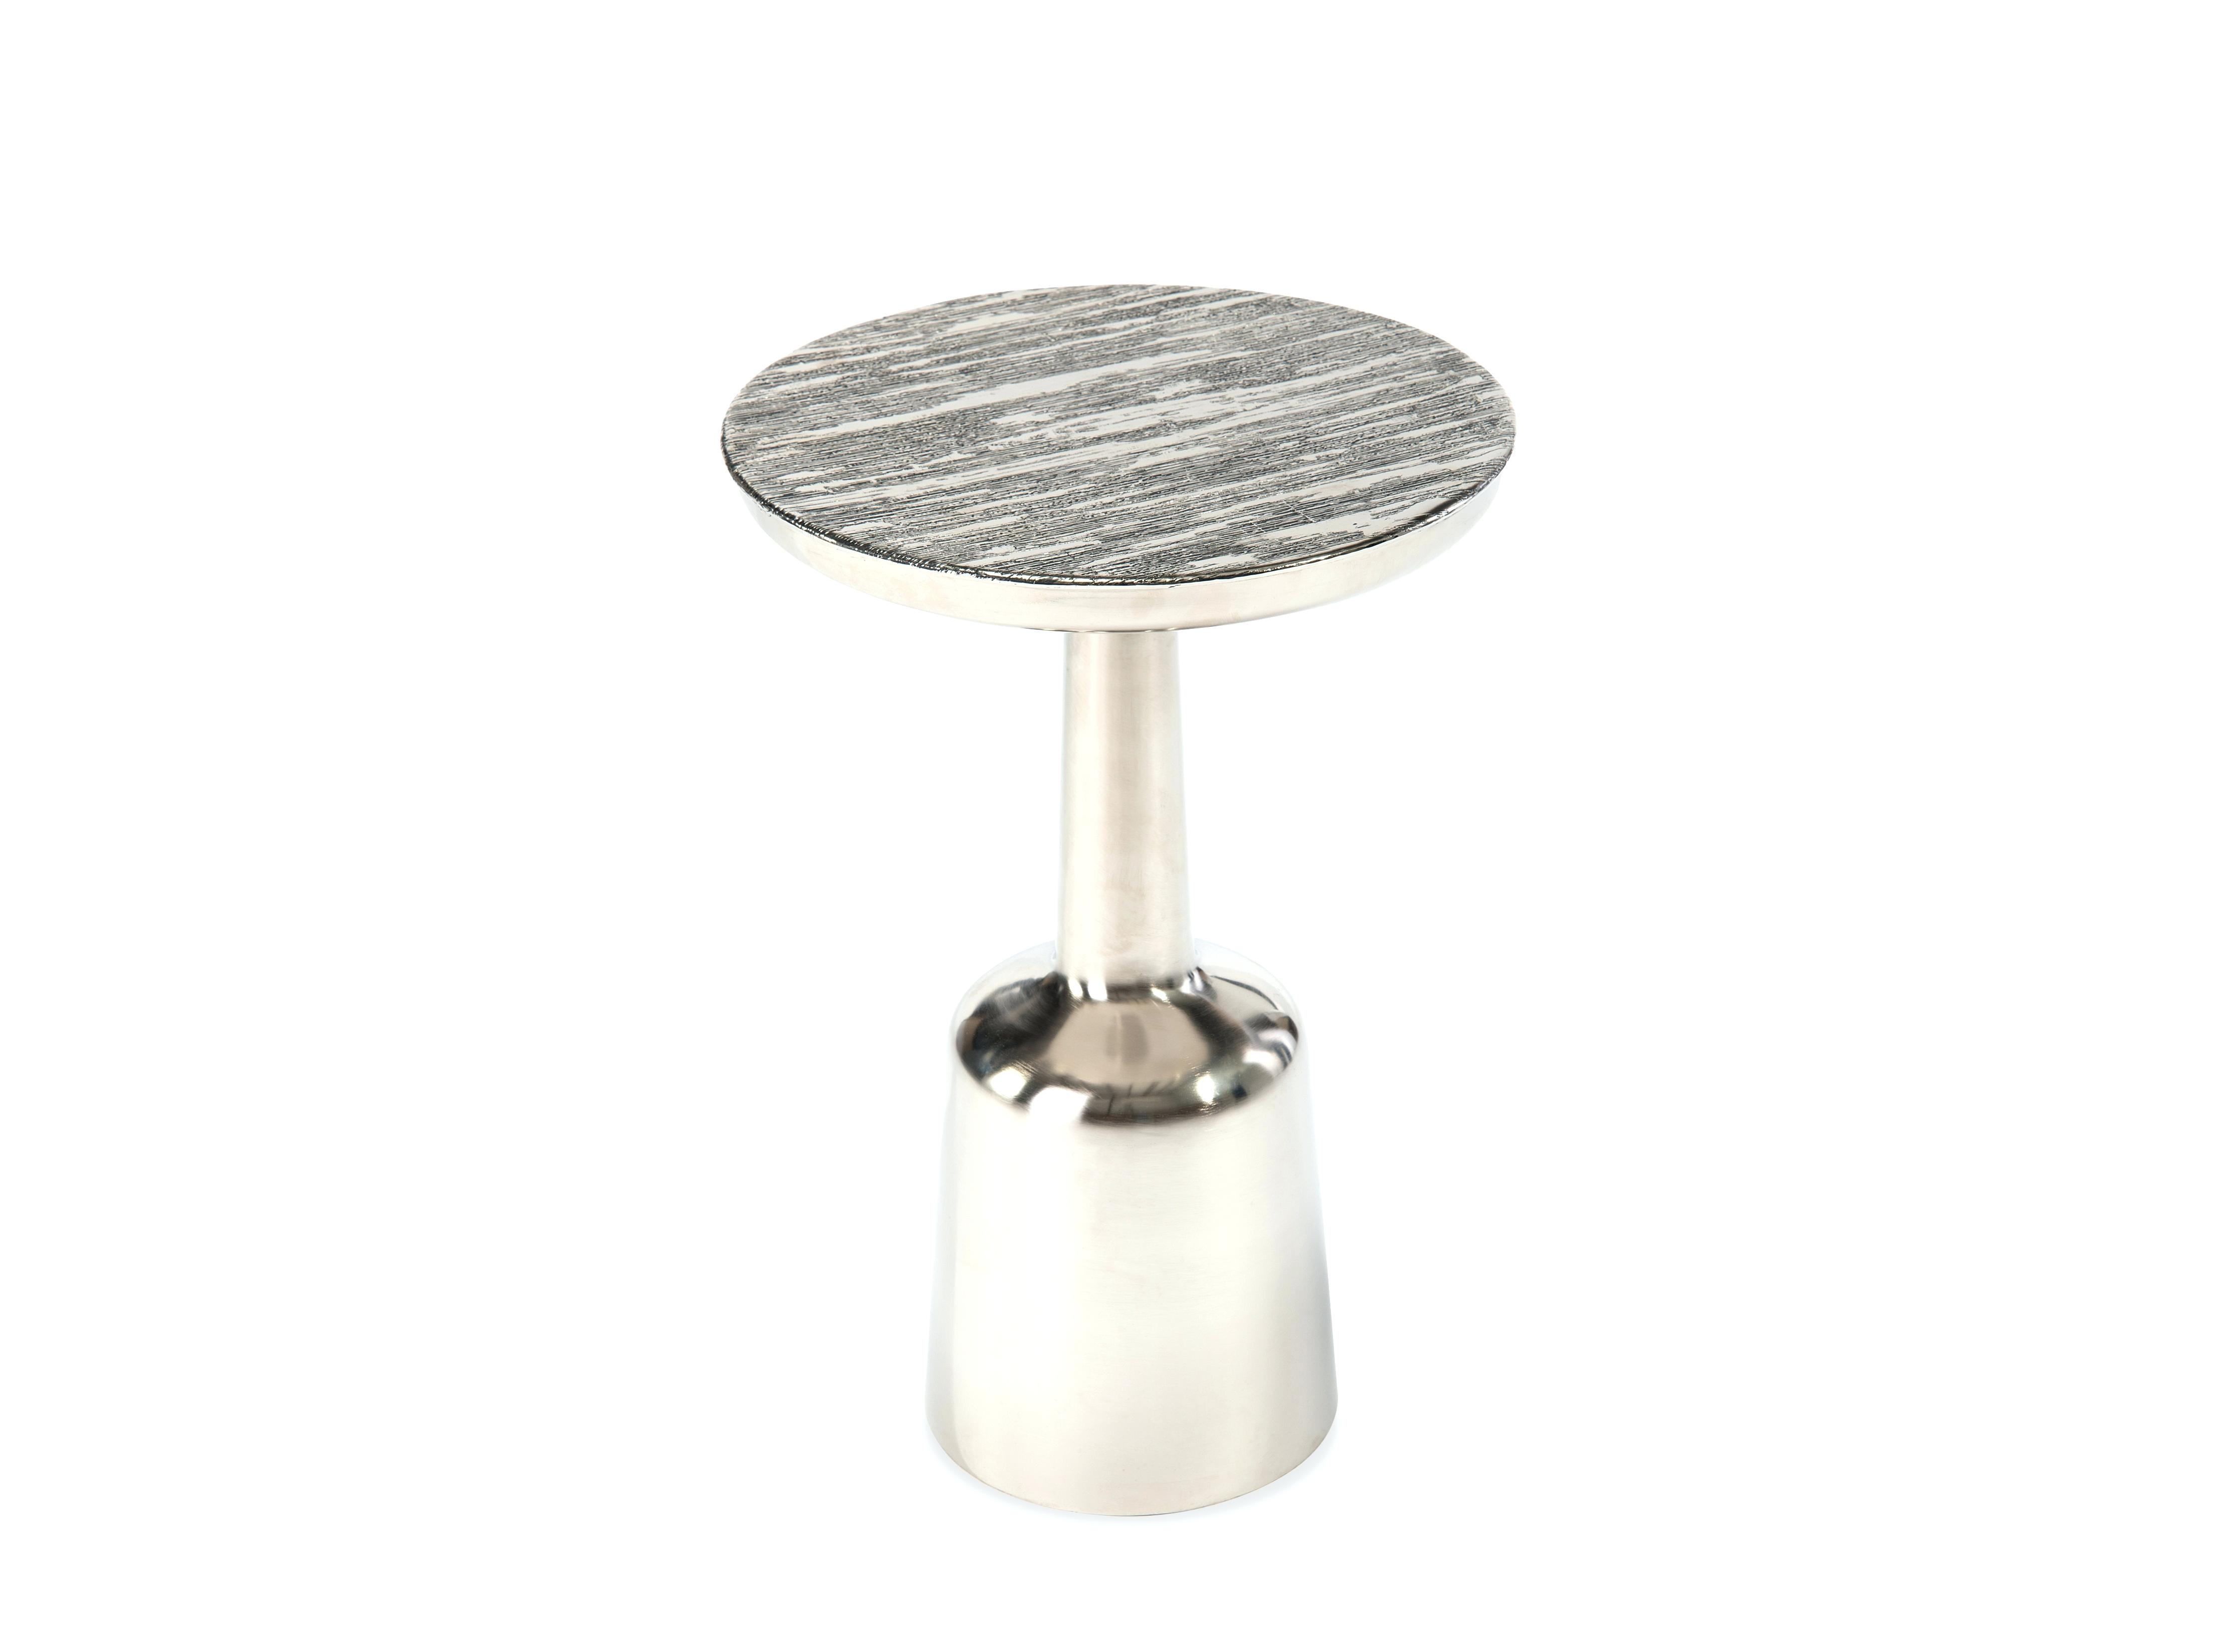 round metal folding tray accent table vintage enamel tables set side furniture home kitchen appealing martini full size grey recliner slim console baroque bedside two tier end